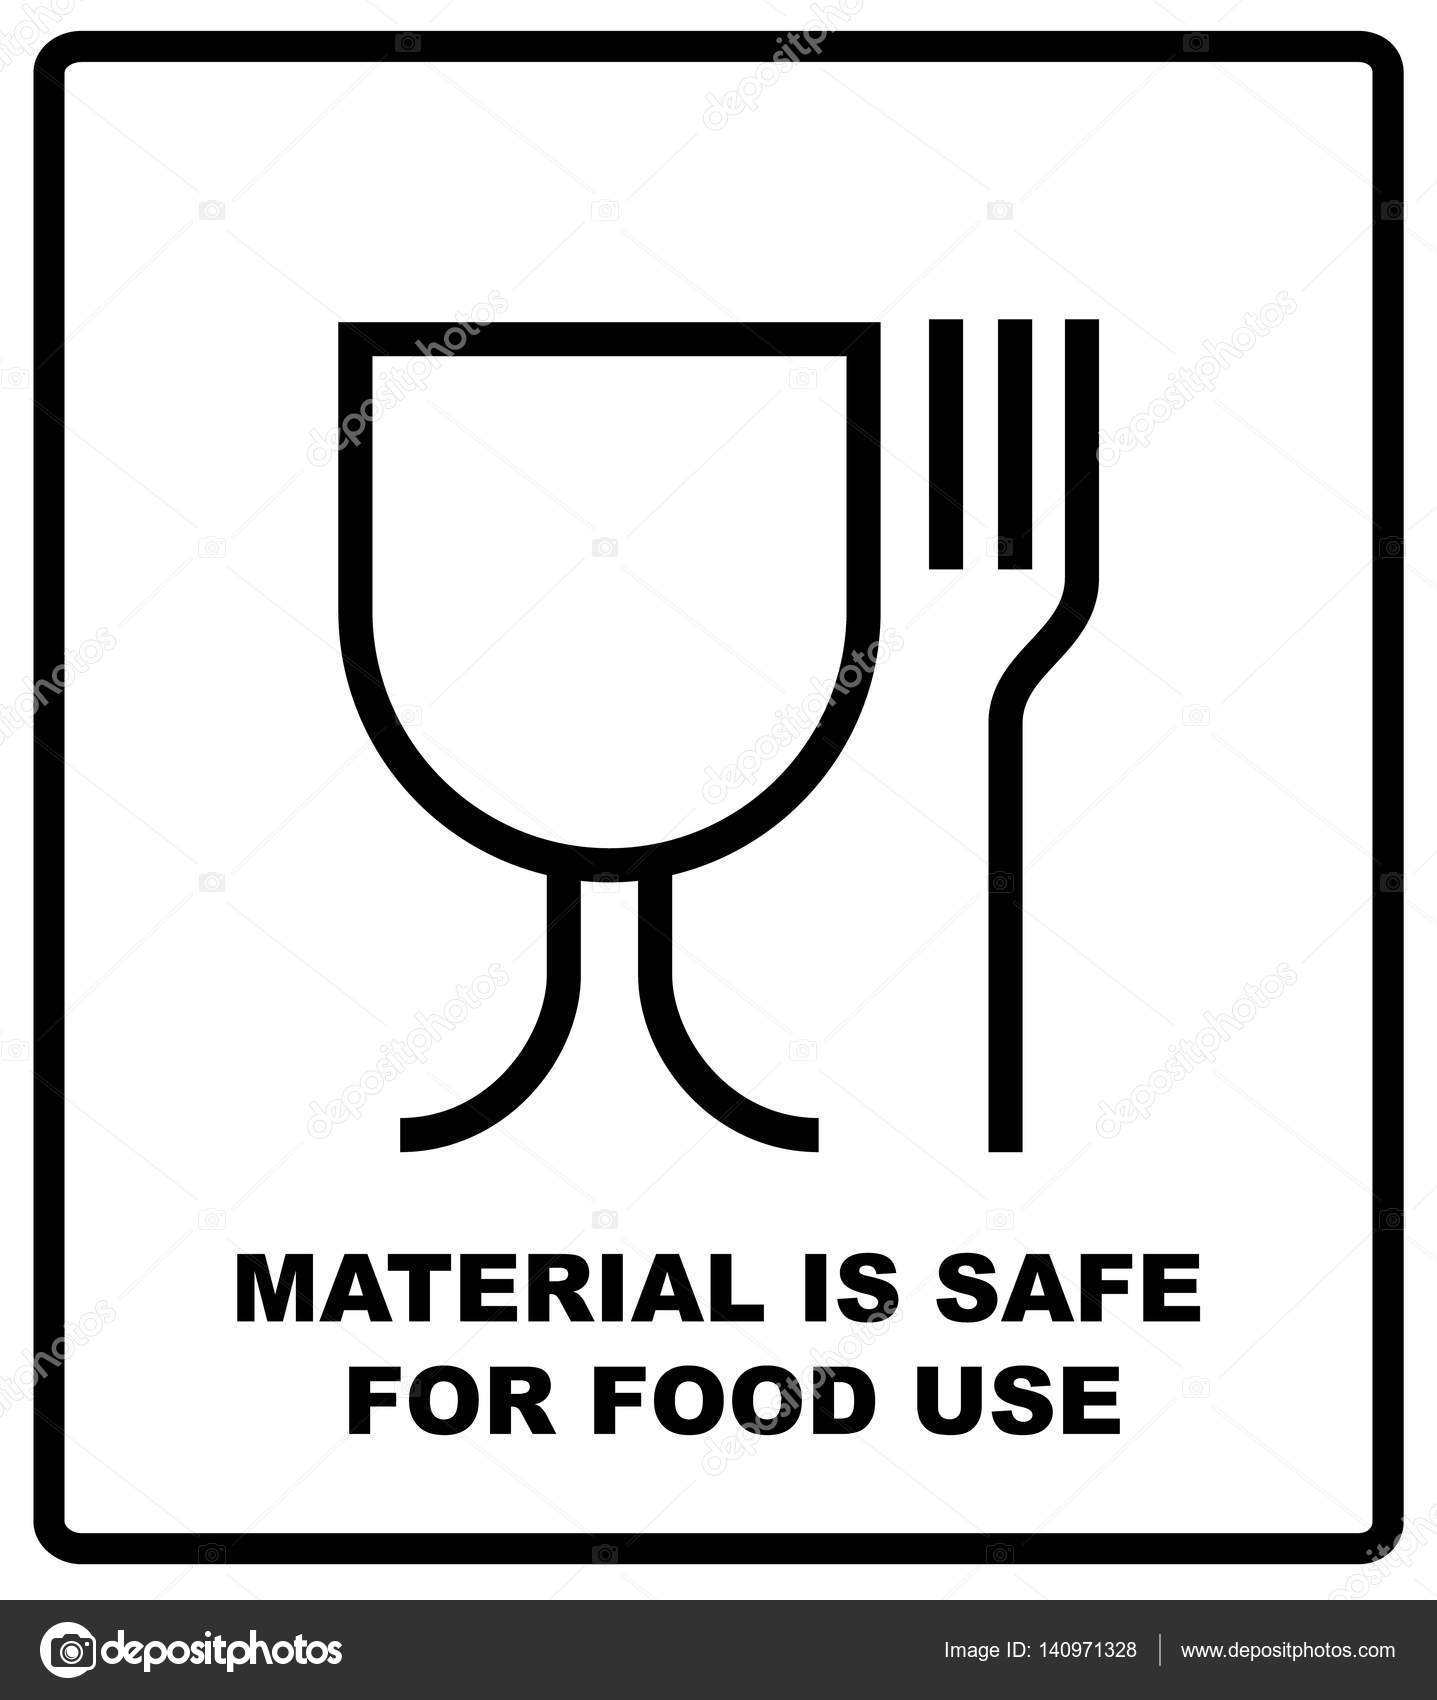 Material is safe for food use icon fork and glass simple black sign material is safe for food use icon fork and glass simple black sign symbol biocorpaavc Gallery